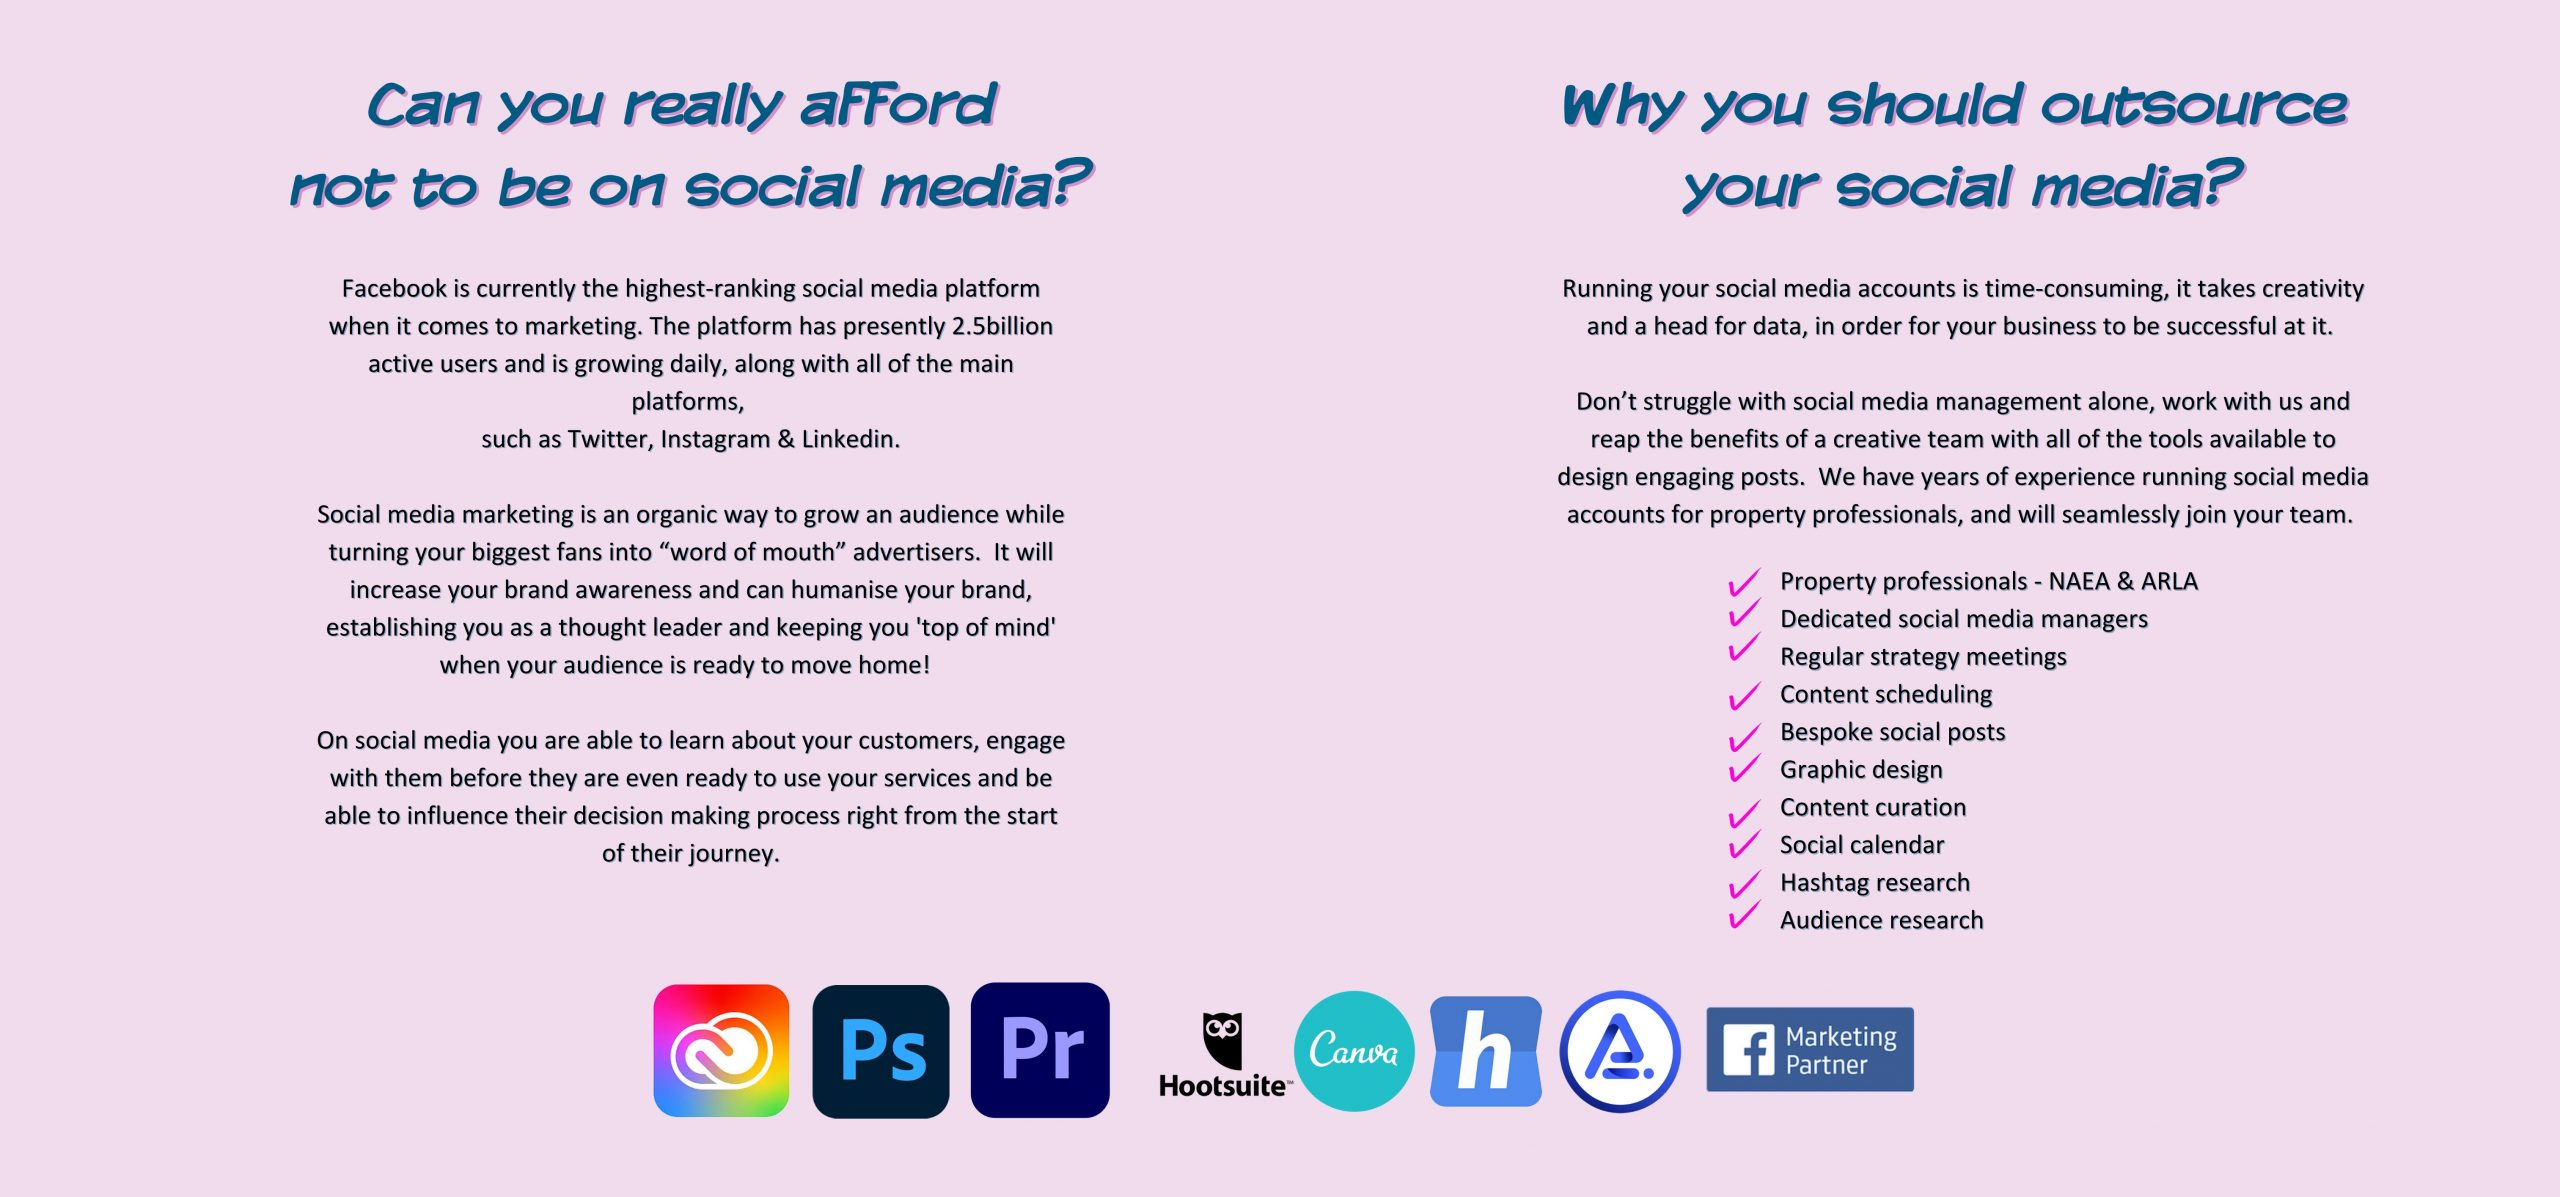 Can your business really afford not to be on social media by Jane Gardner